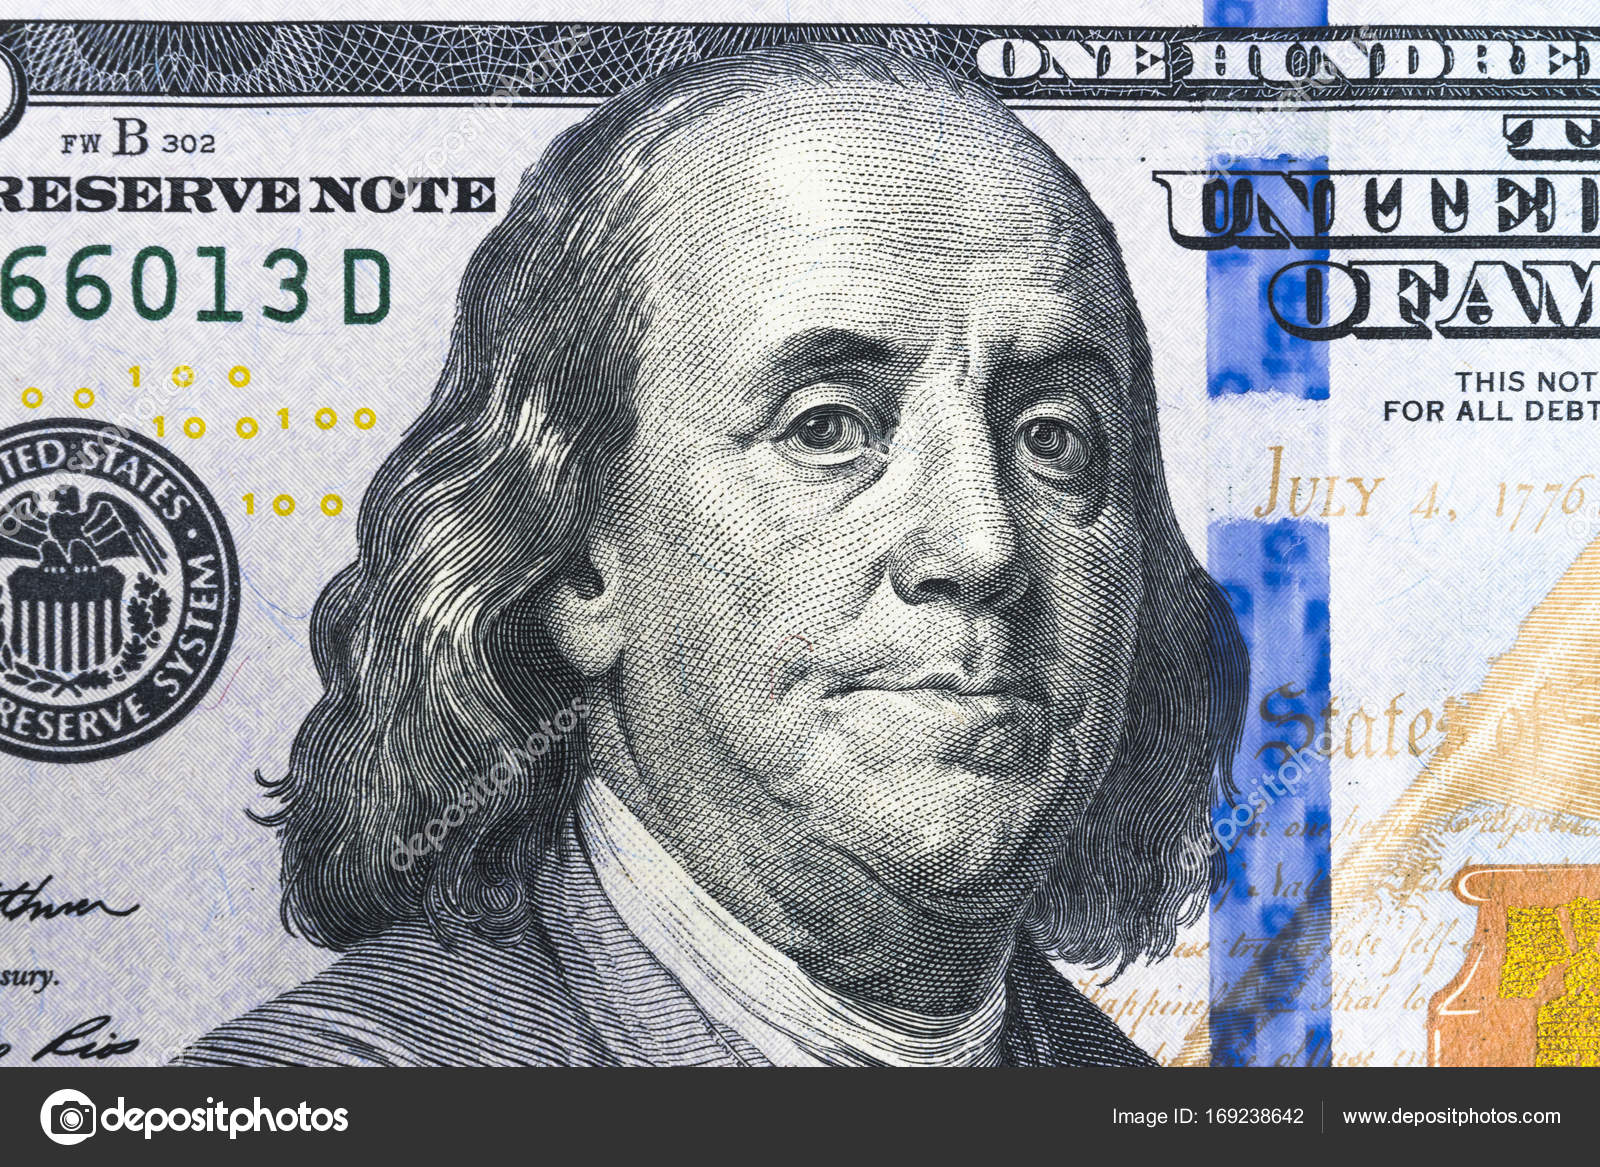 Close Up Overhead View Of Benjamin Franklin Face On 100 Us Dollar Bill Us One Hundred Dollar Bill Closeup Heap Of One Hundred Dollar Bills On Money